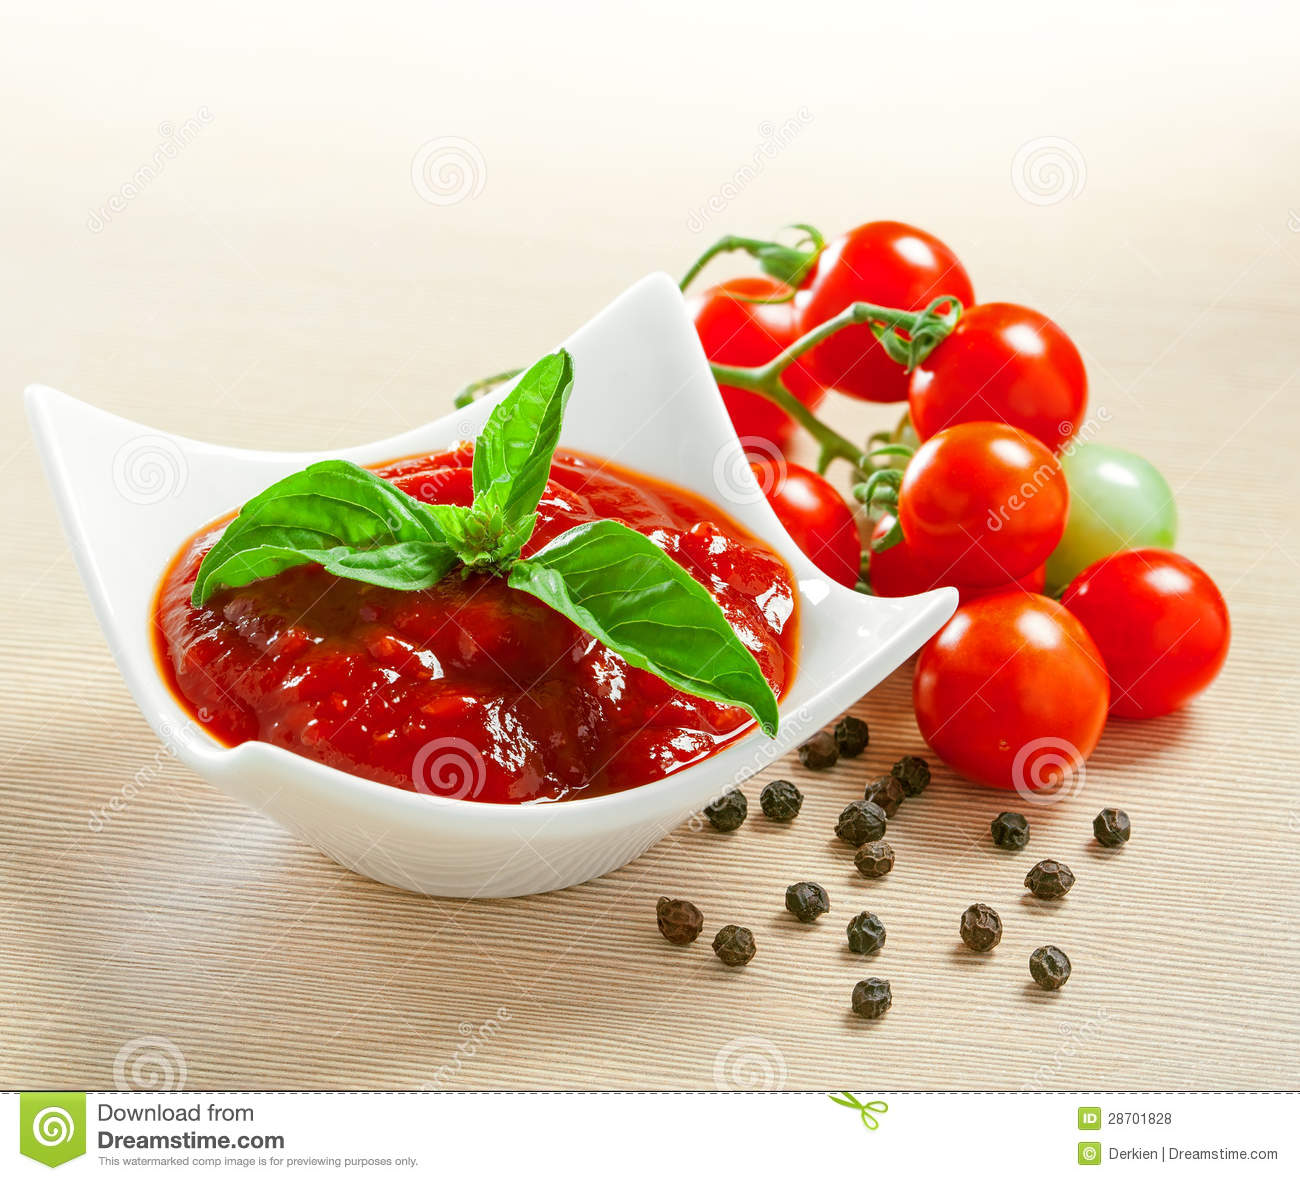 Red Tomato Sauce Royalty Free Stock Photos - Image: 28701828